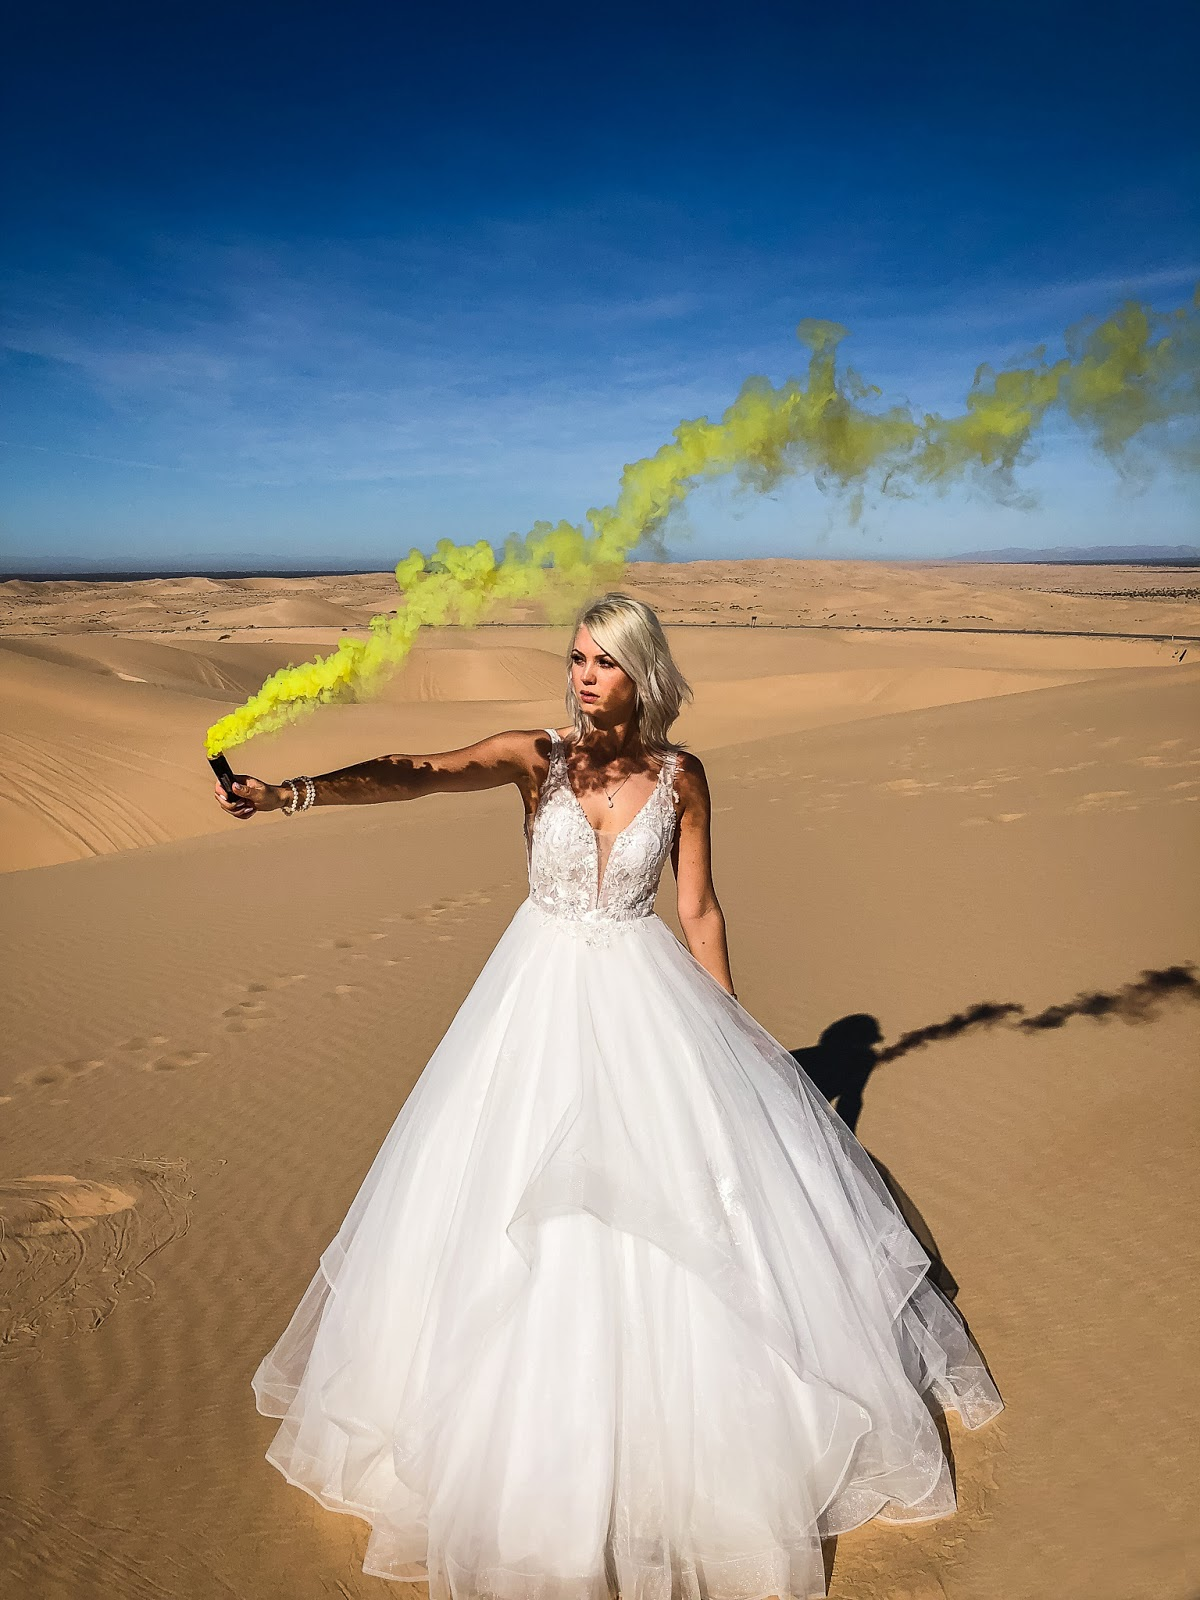 smoke bomb wedding photoshoot inspiration